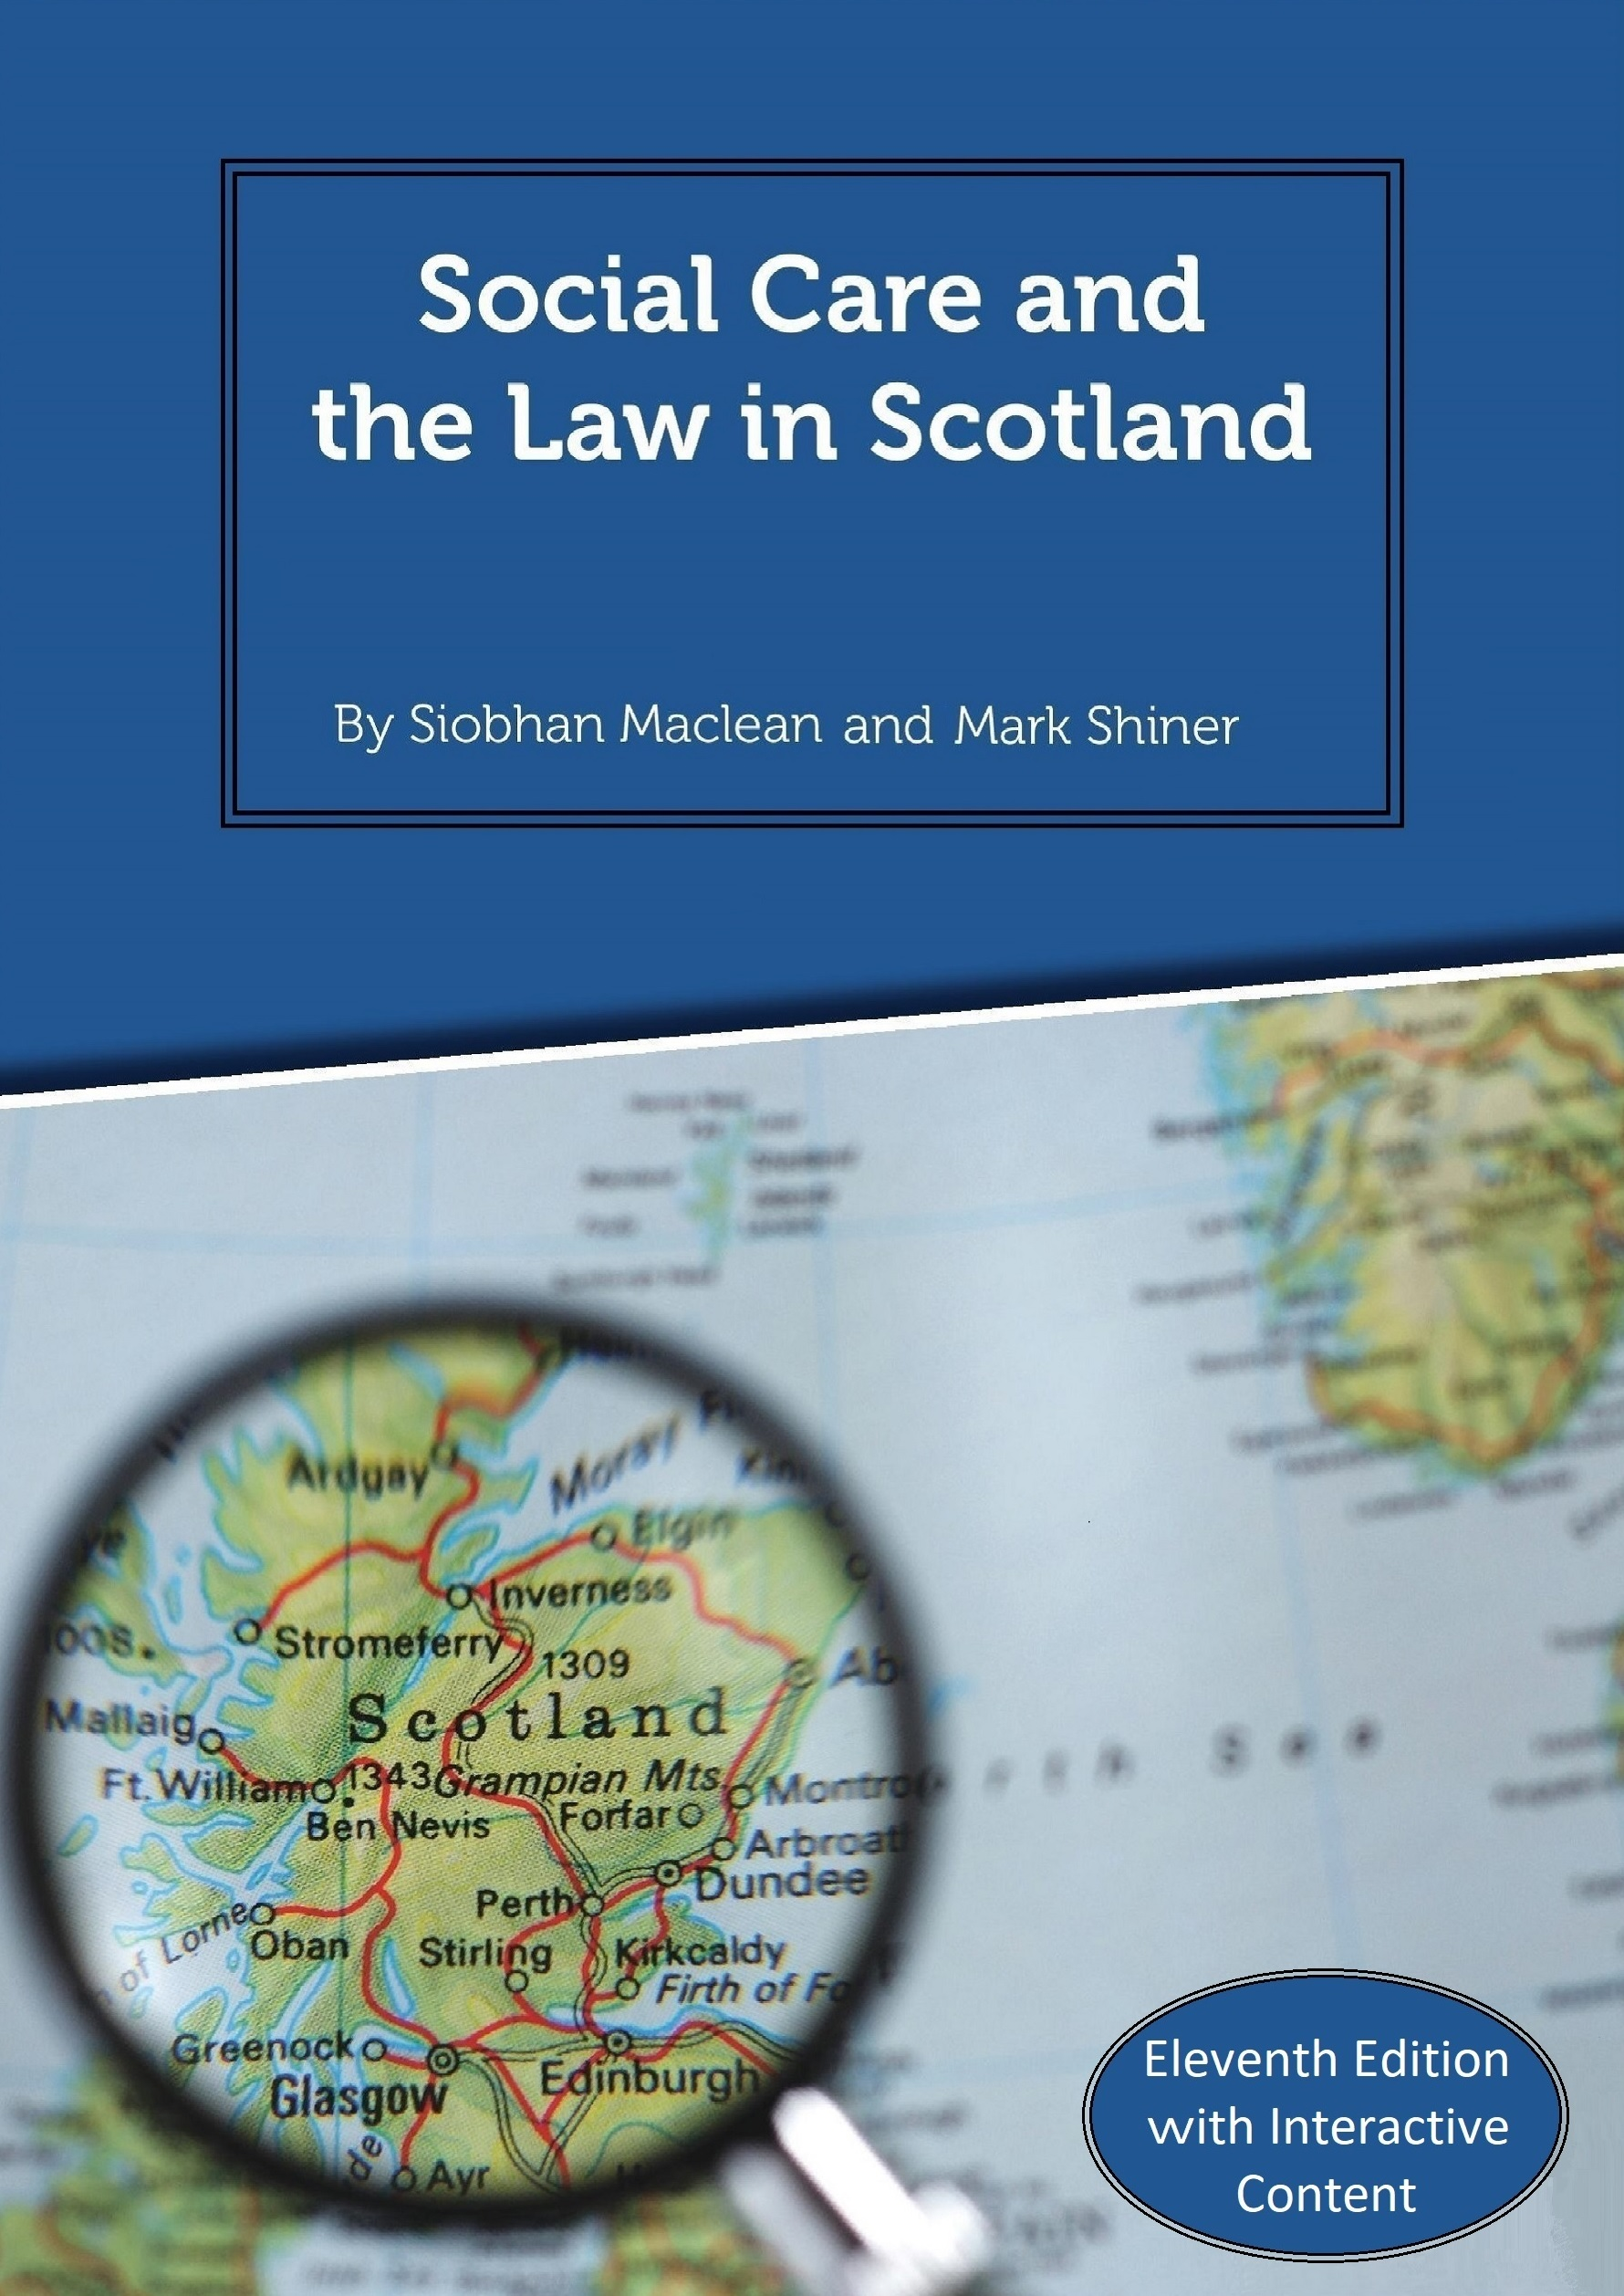 Social Care and the Law in Scotland - 11th Edition 2018